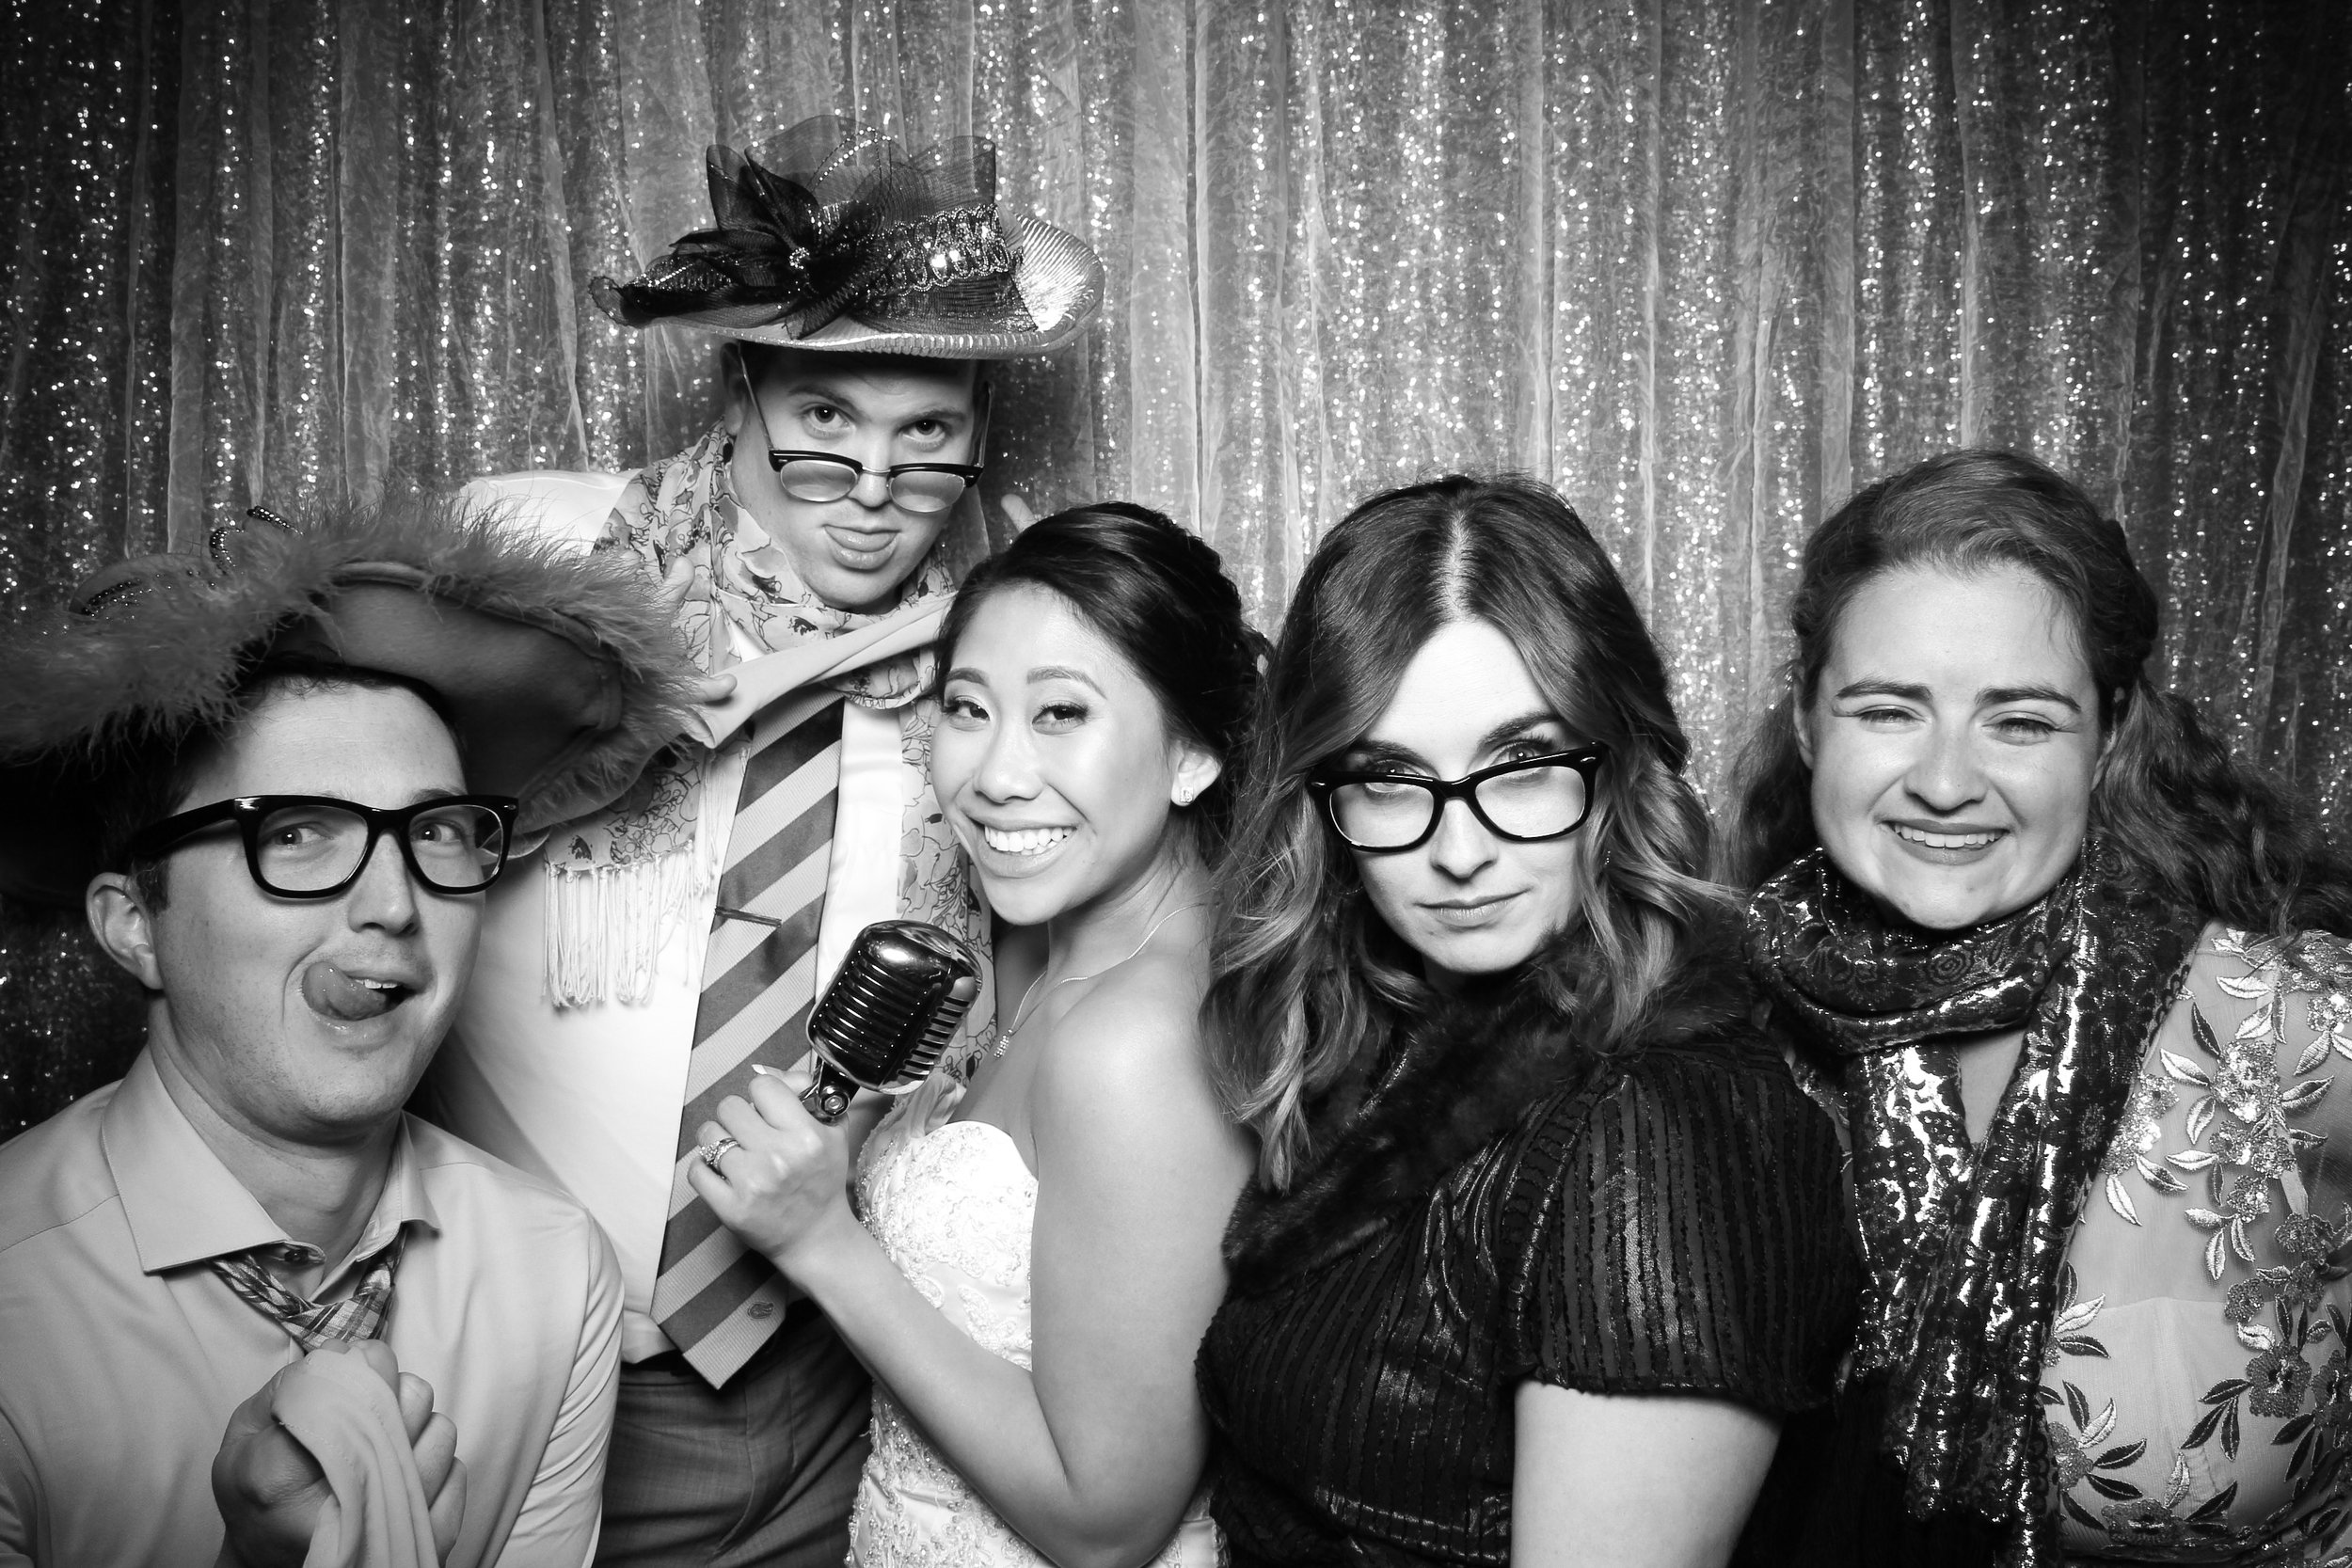 Chicago_Vintage_Wedding_Photobooth_Glen_Club_39.jpg